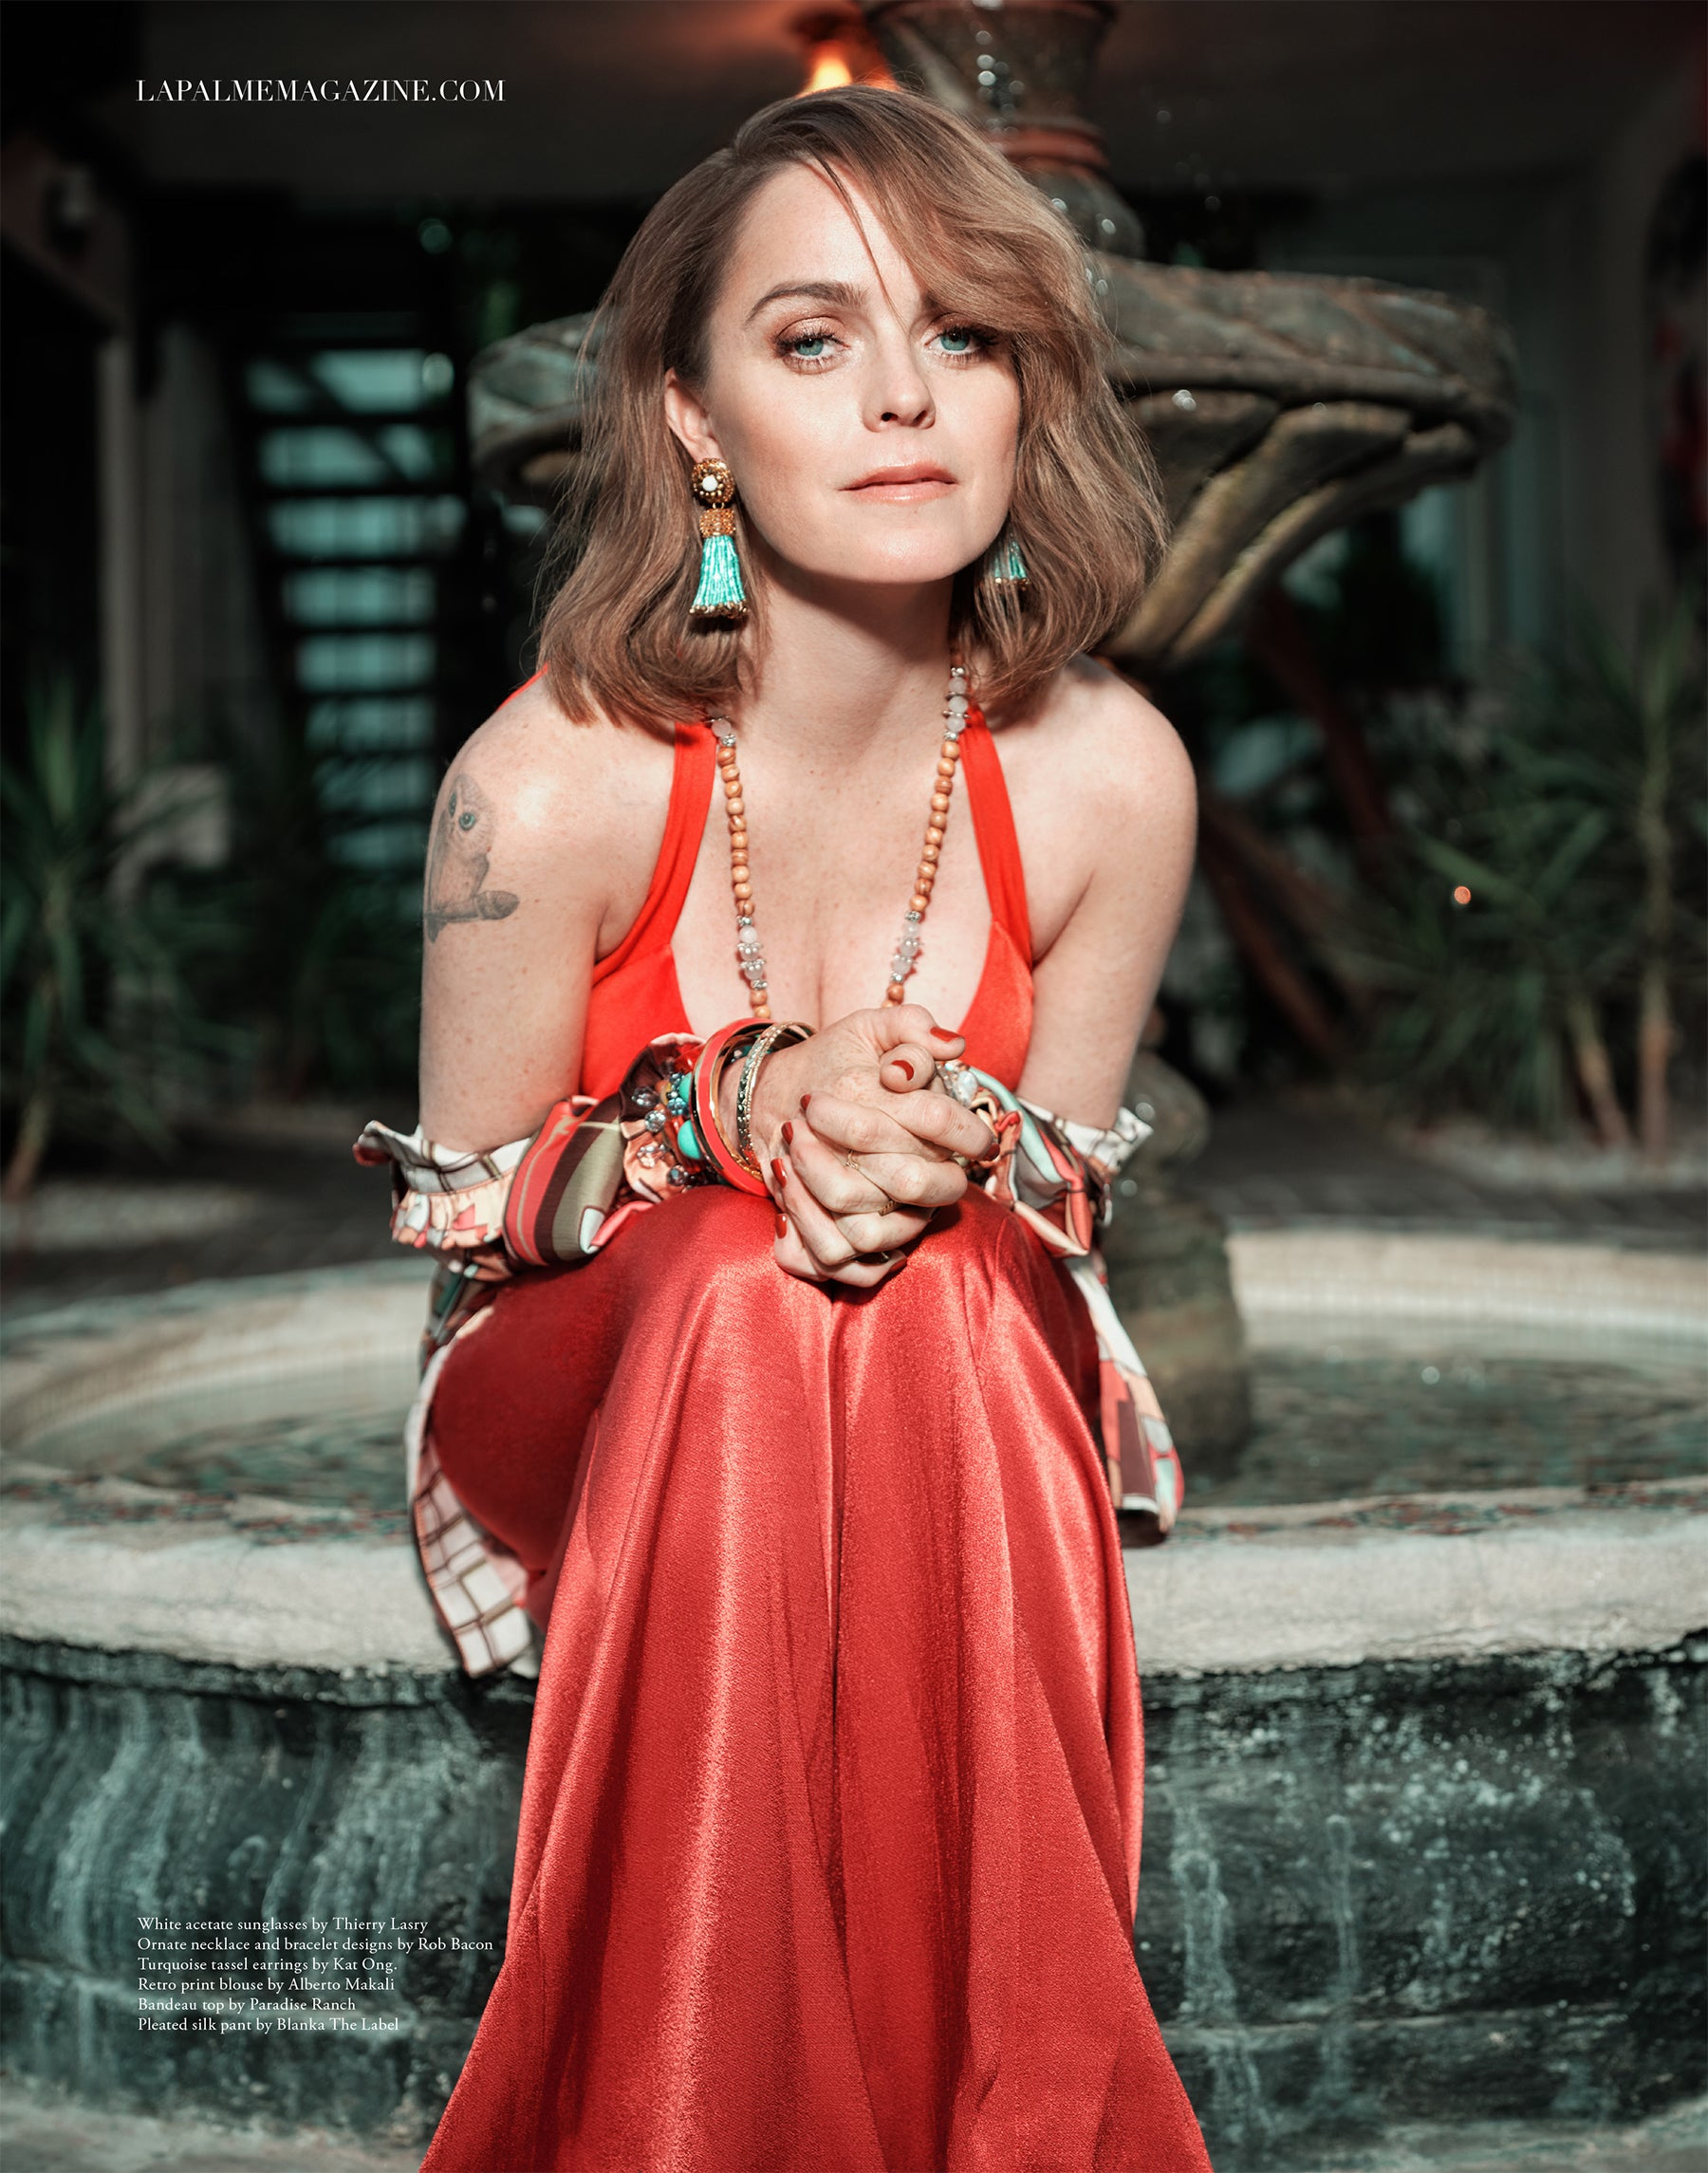 Actress Taryn Manning Wears Paradise Ranch Designs in LaPalme Magazine